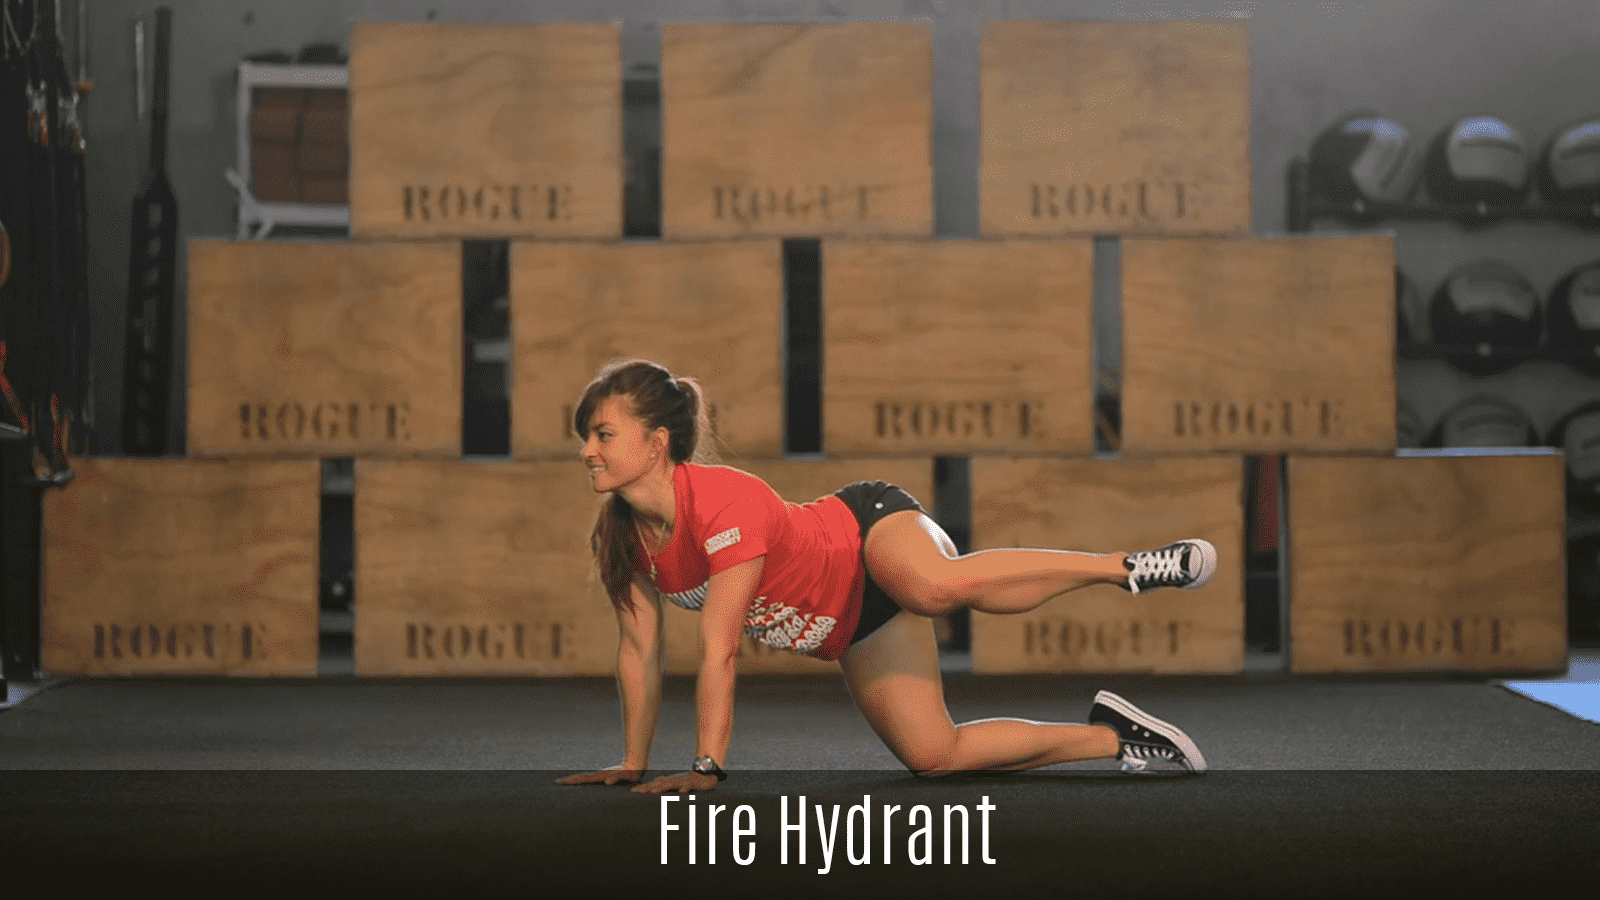 fire hydrant exercise demo